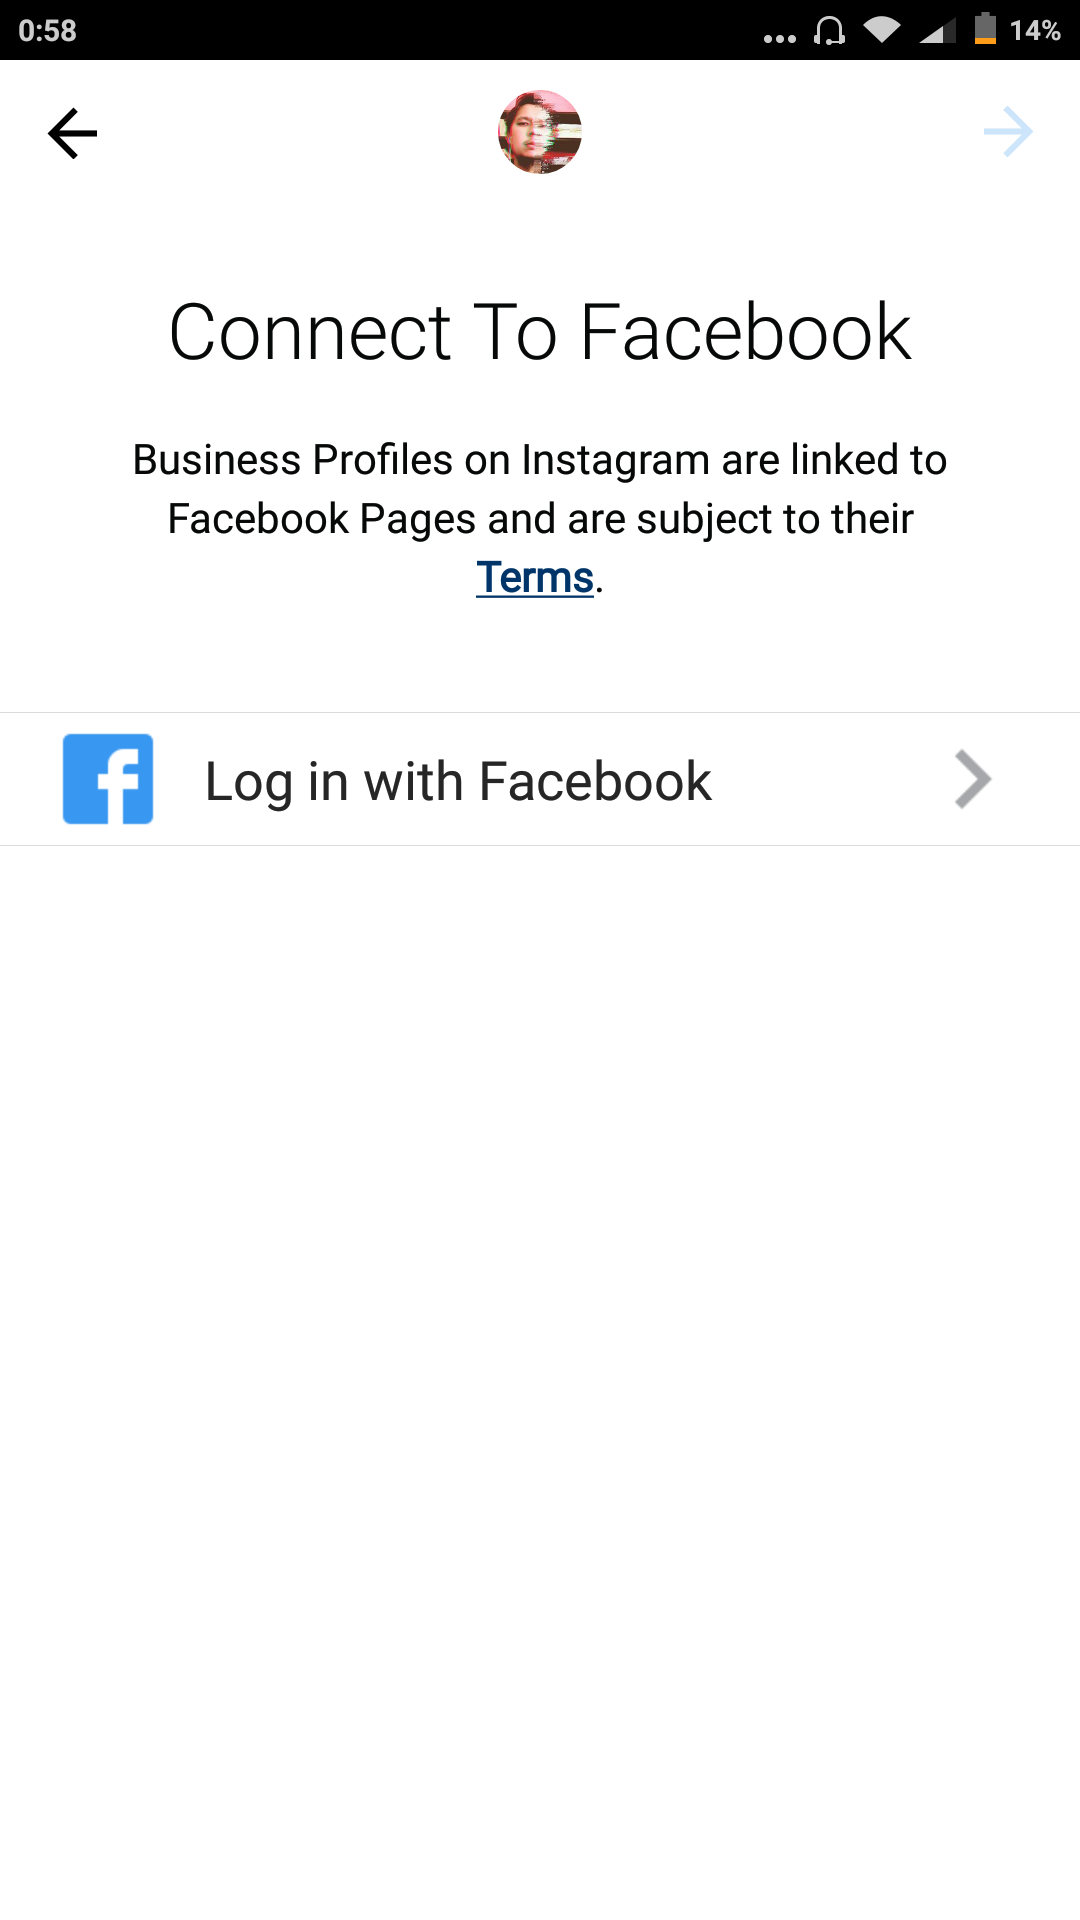 log in with Facebook